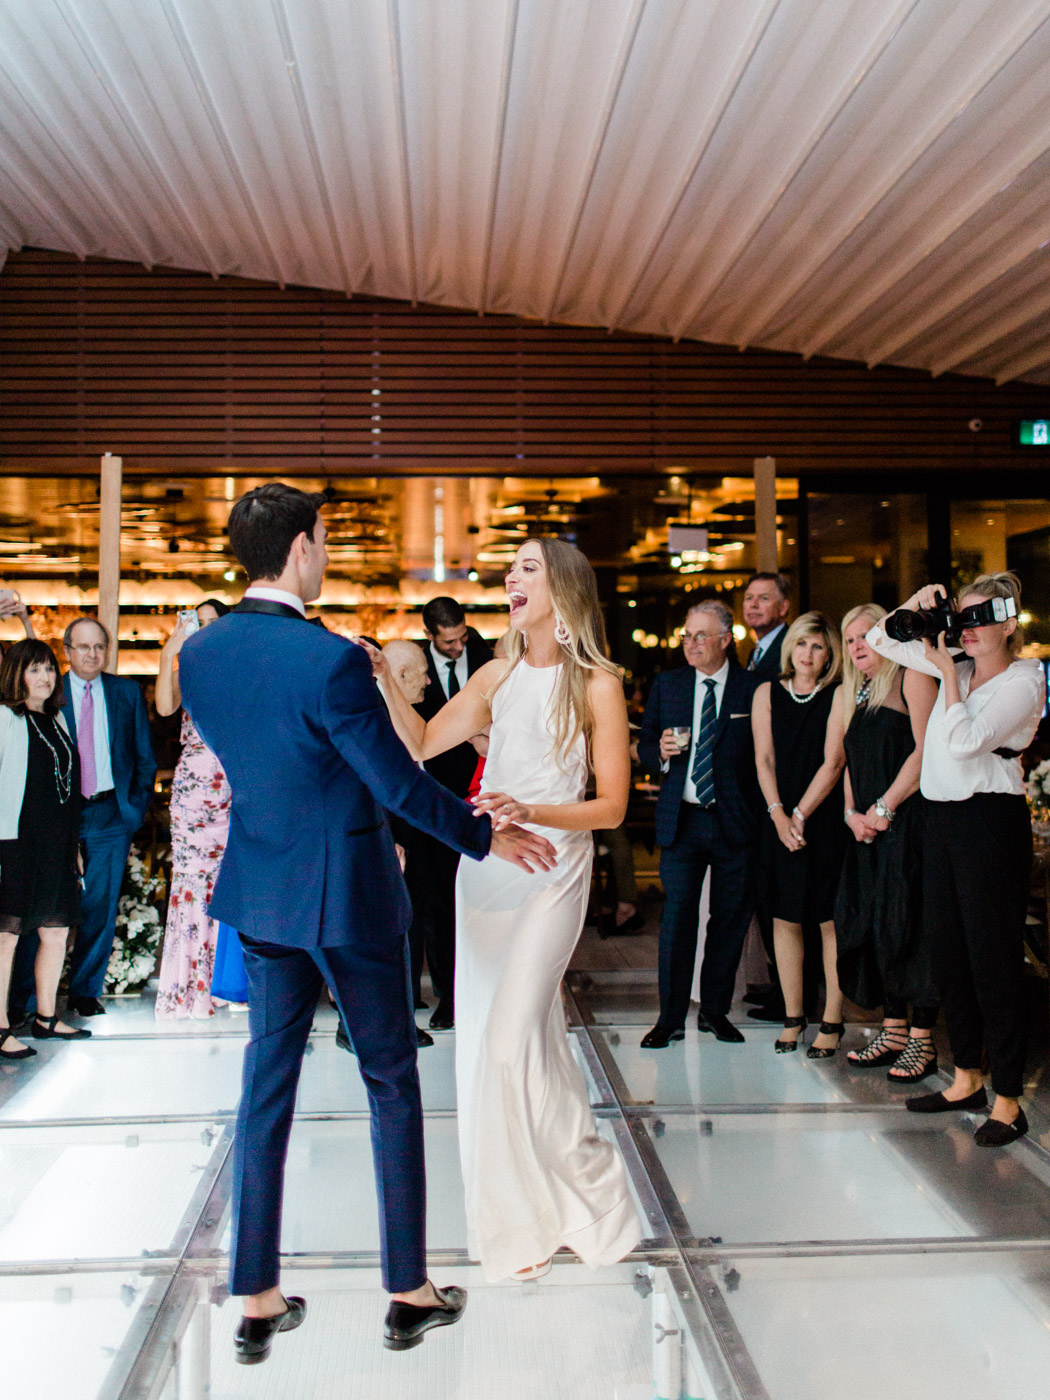 -classic candid photo of the first dance between bride and the groom at their Jewish wedding.  Captured by Toronto wedding photographer Corynn Fowler Photography.